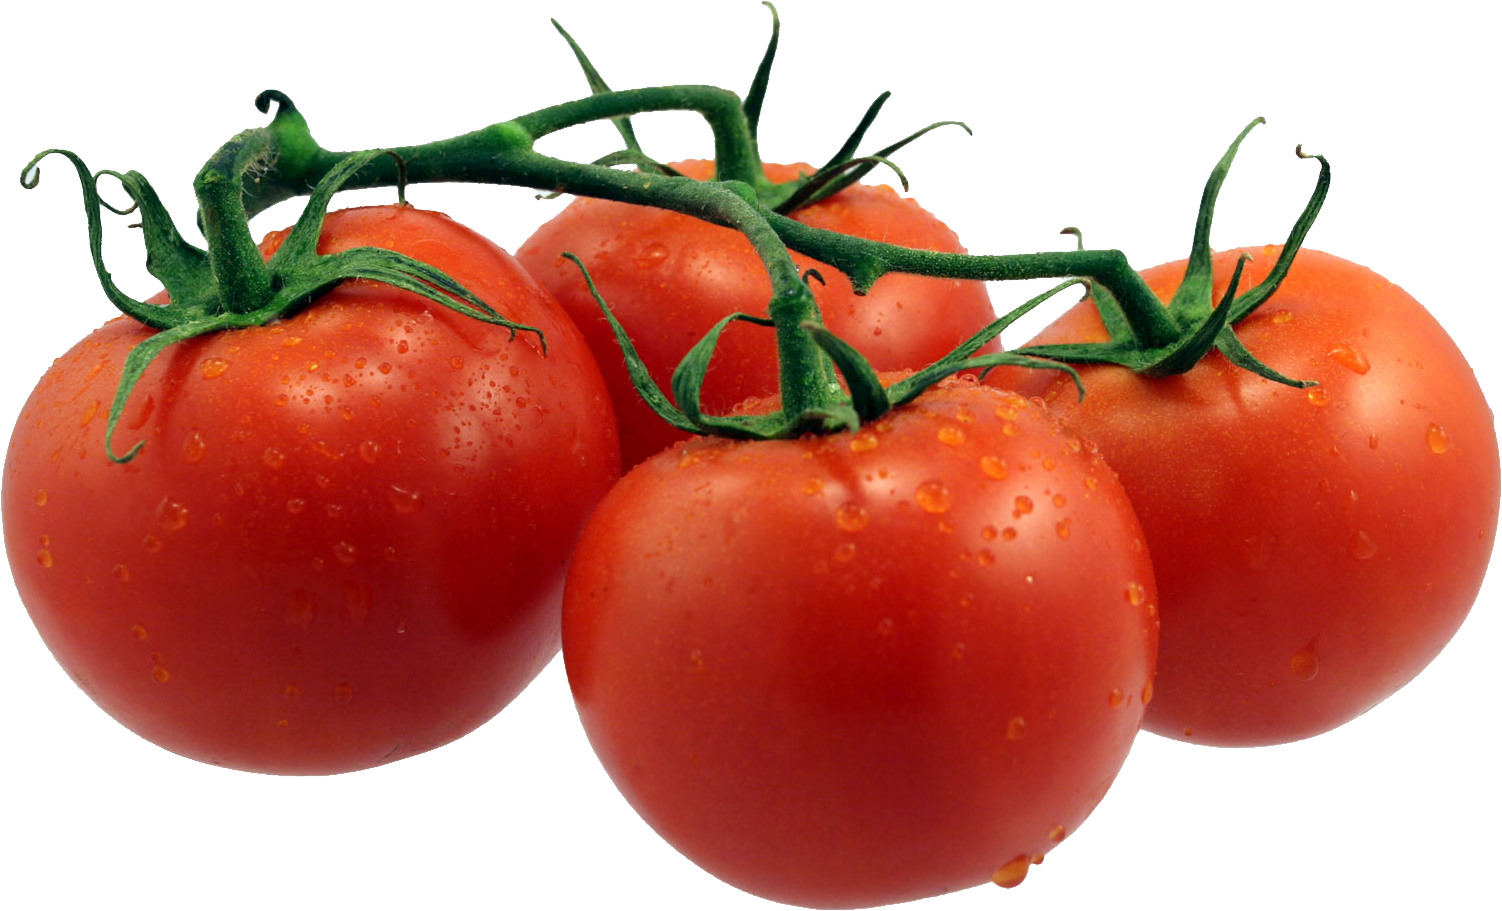 Red png image purepng. Tomatoes clipart tomato juice